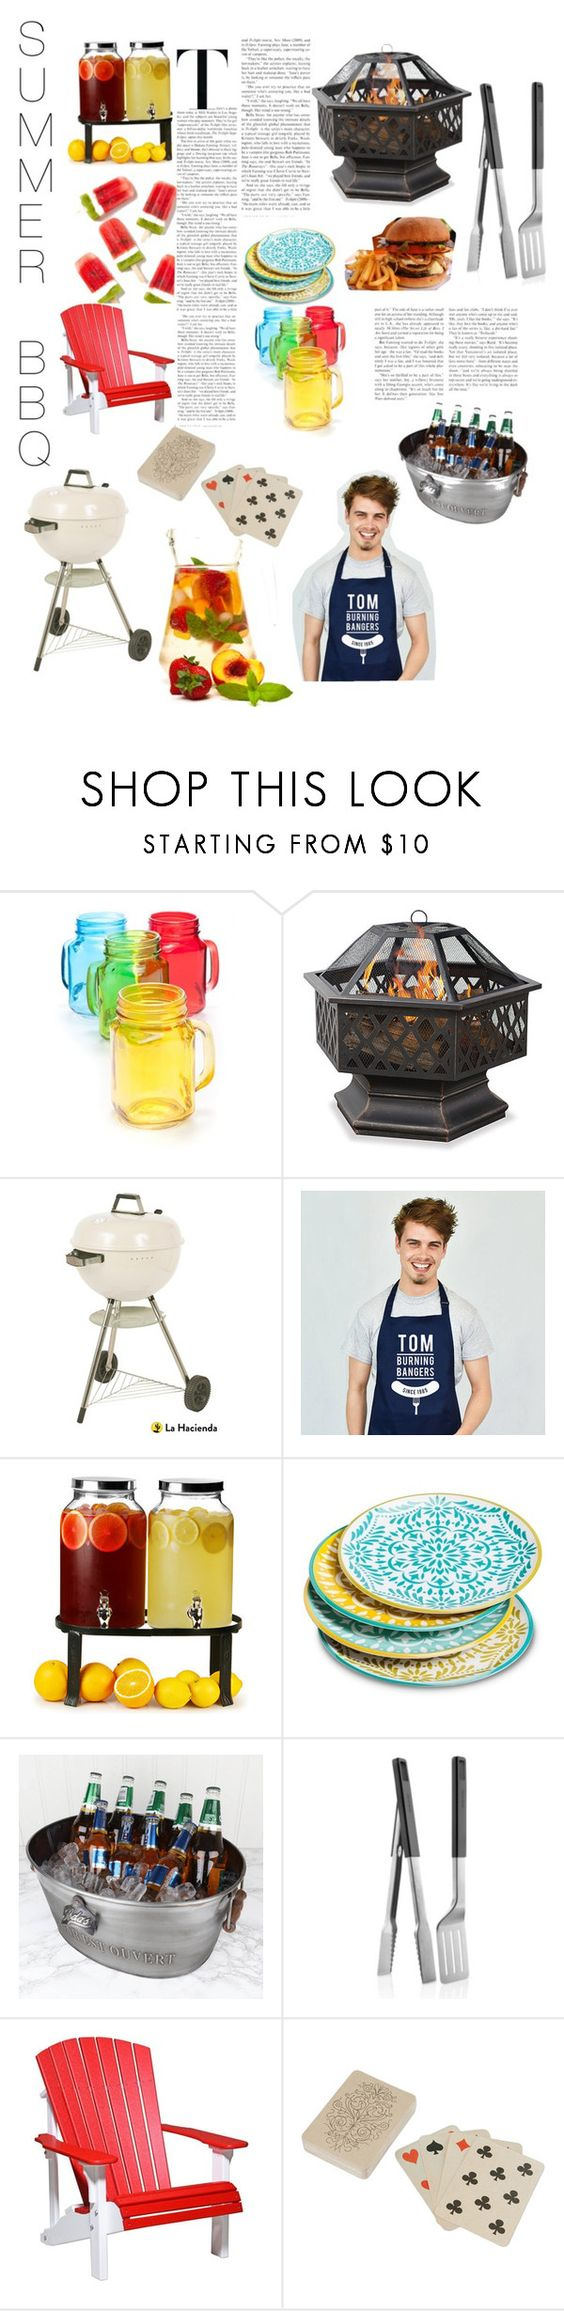 """BBQ BLAST"" by awbreepaigeroo ❤ liked on Polyvore featuring interior, interiors, interior design, home, home decor, interior decorating, Home Essentials, Improvements, La Hacienda and Ellie Ellie"